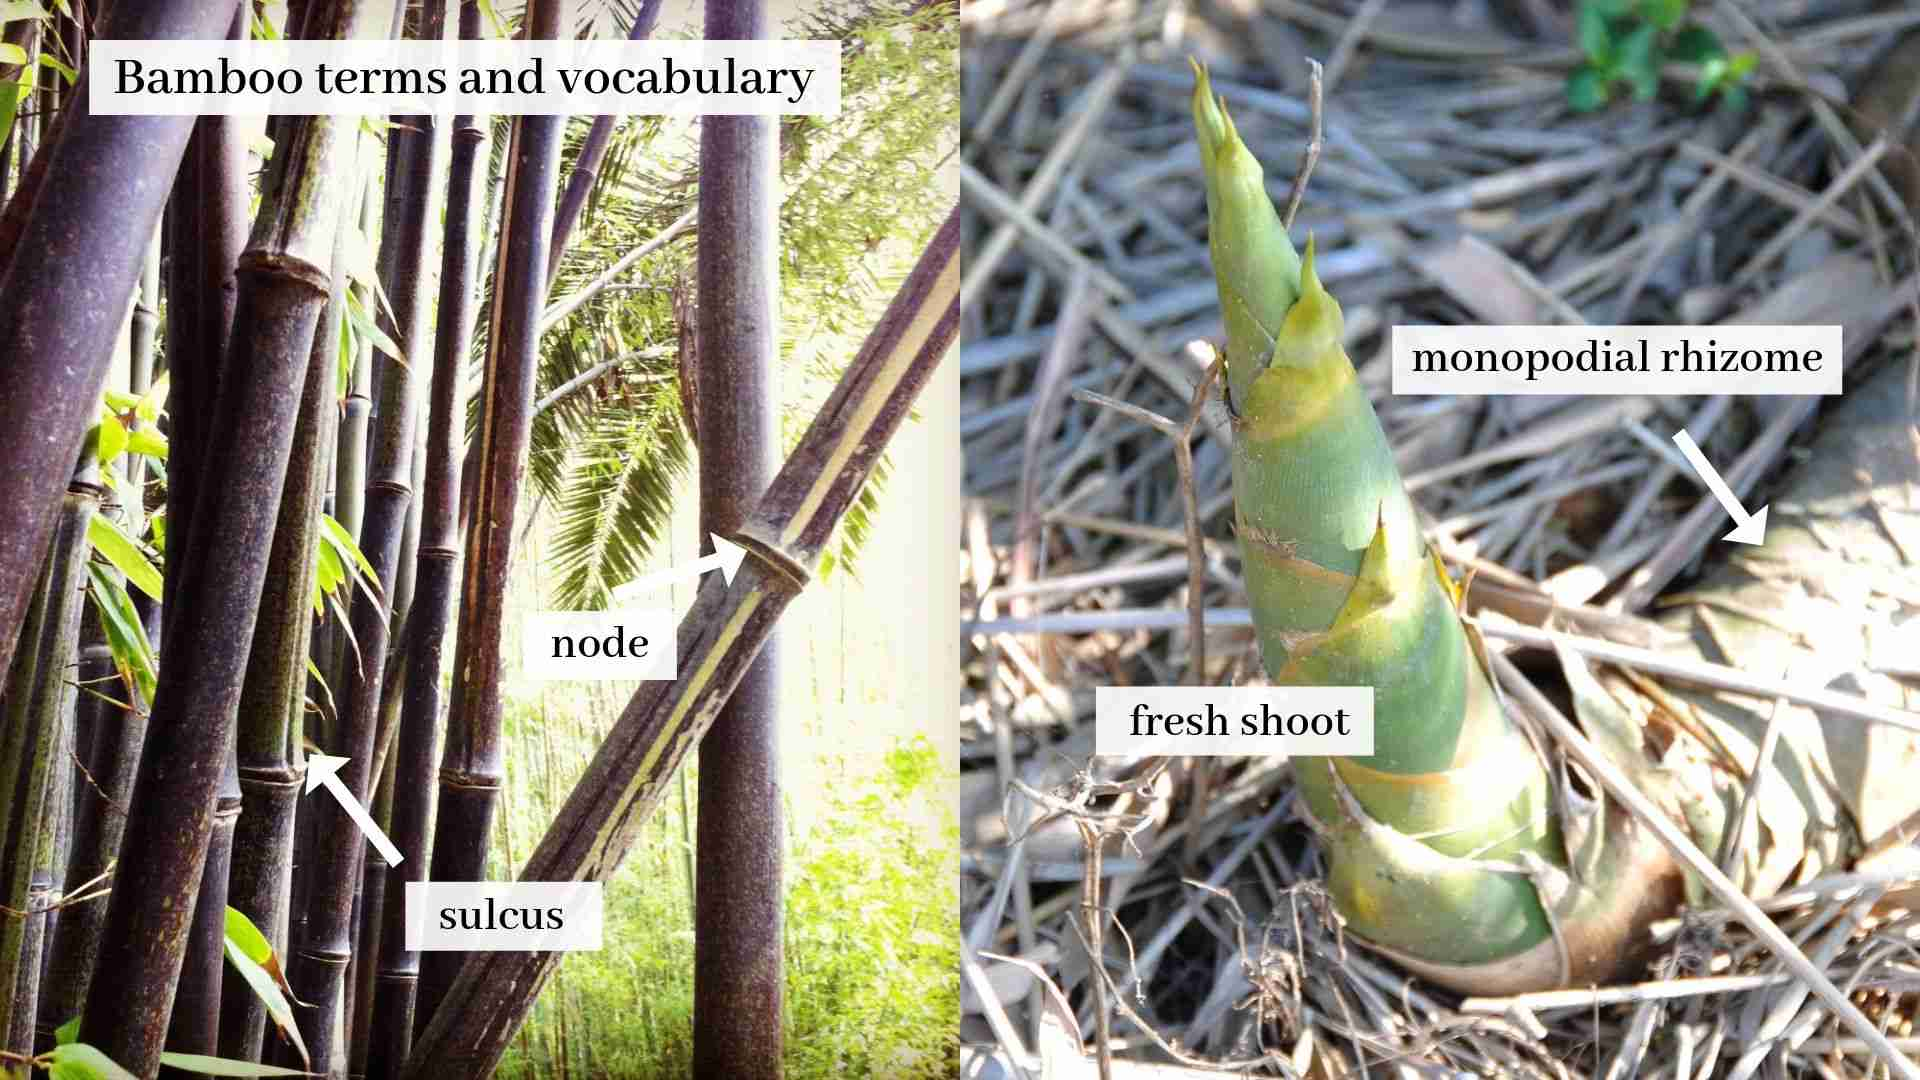 Bamboo terms and vocabulary